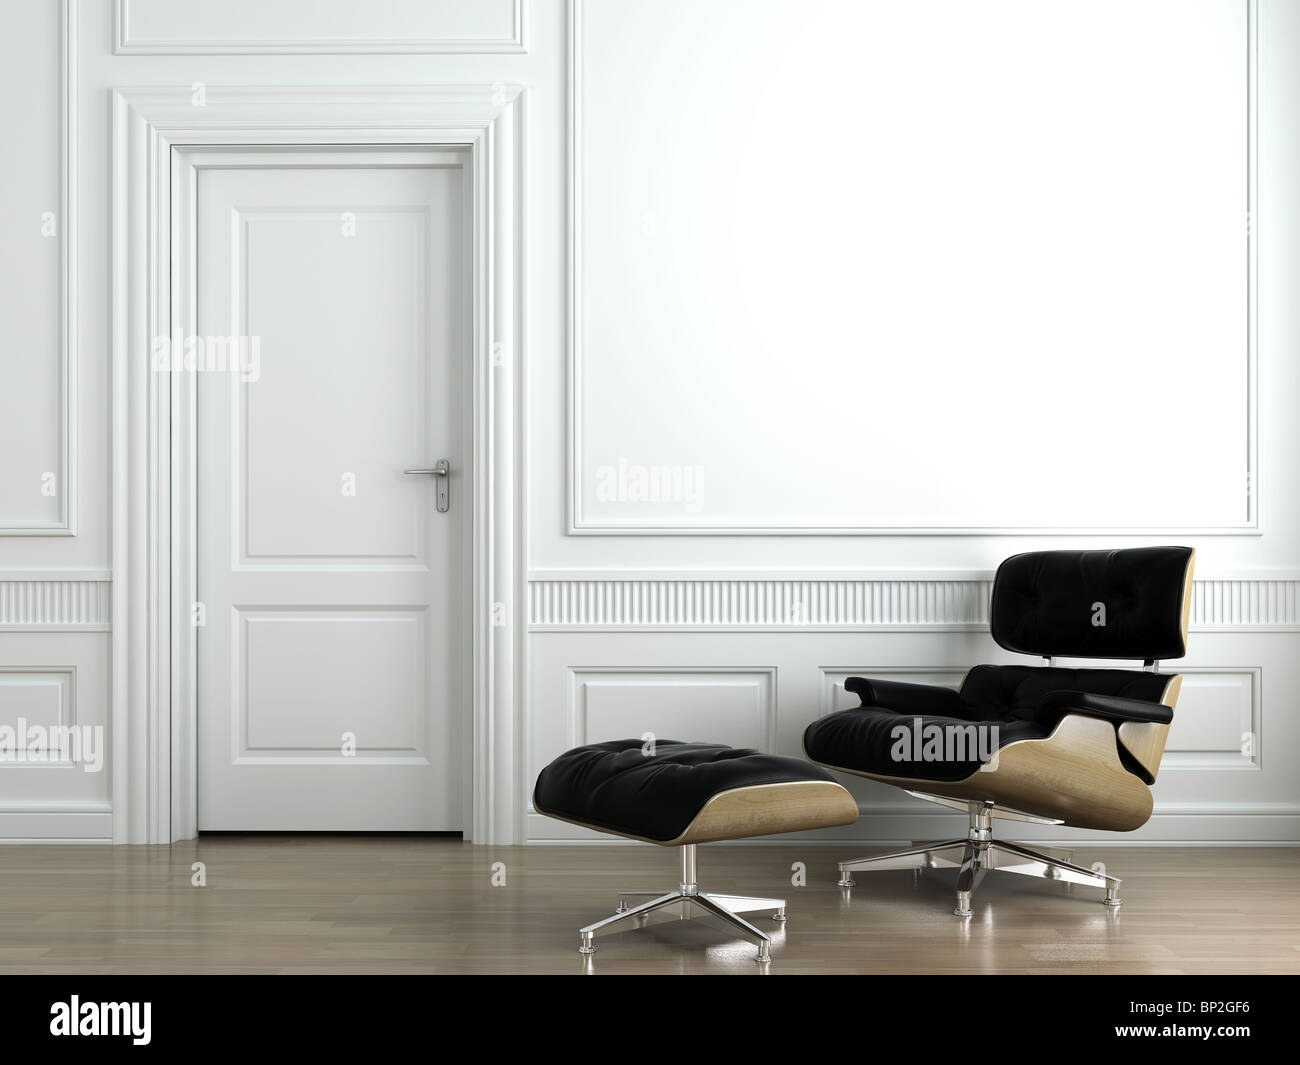 3d scene of leather armchair on white classic interior wall - Stock Image